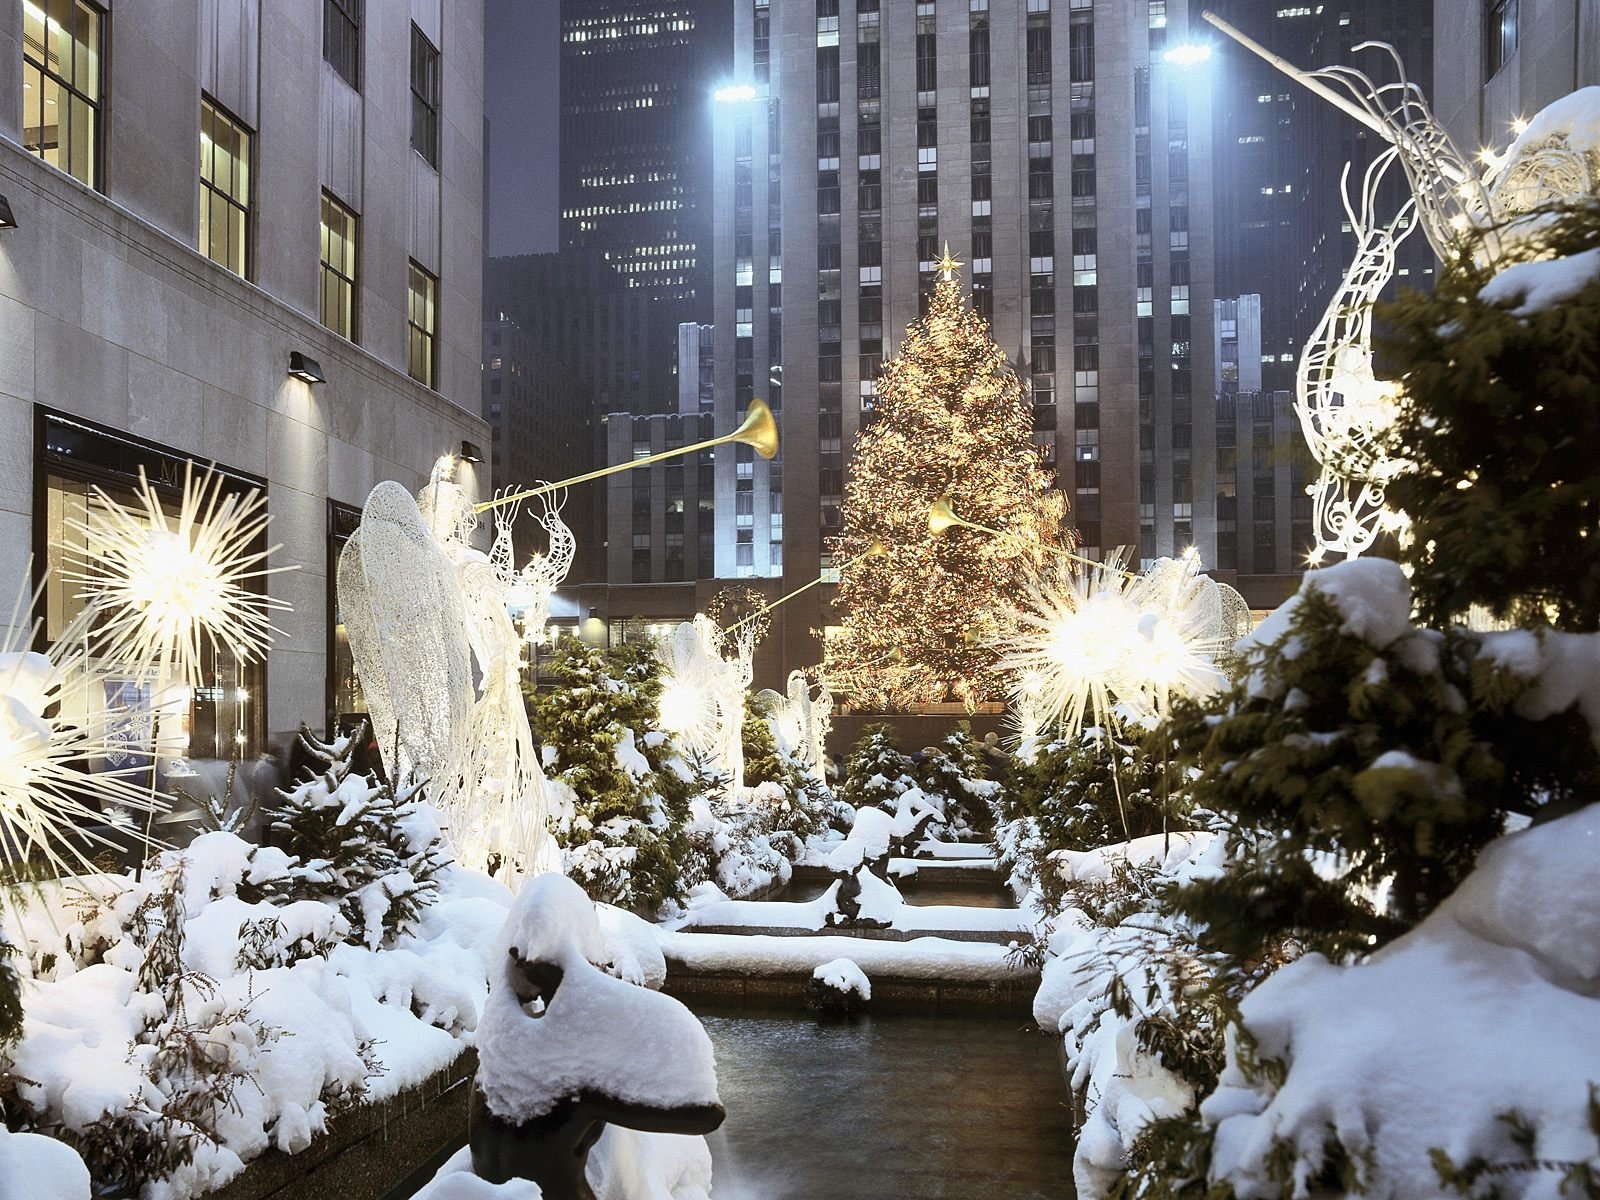 Traveler Guide 10 Best Cities to Celebrate Christmas 1600x1200